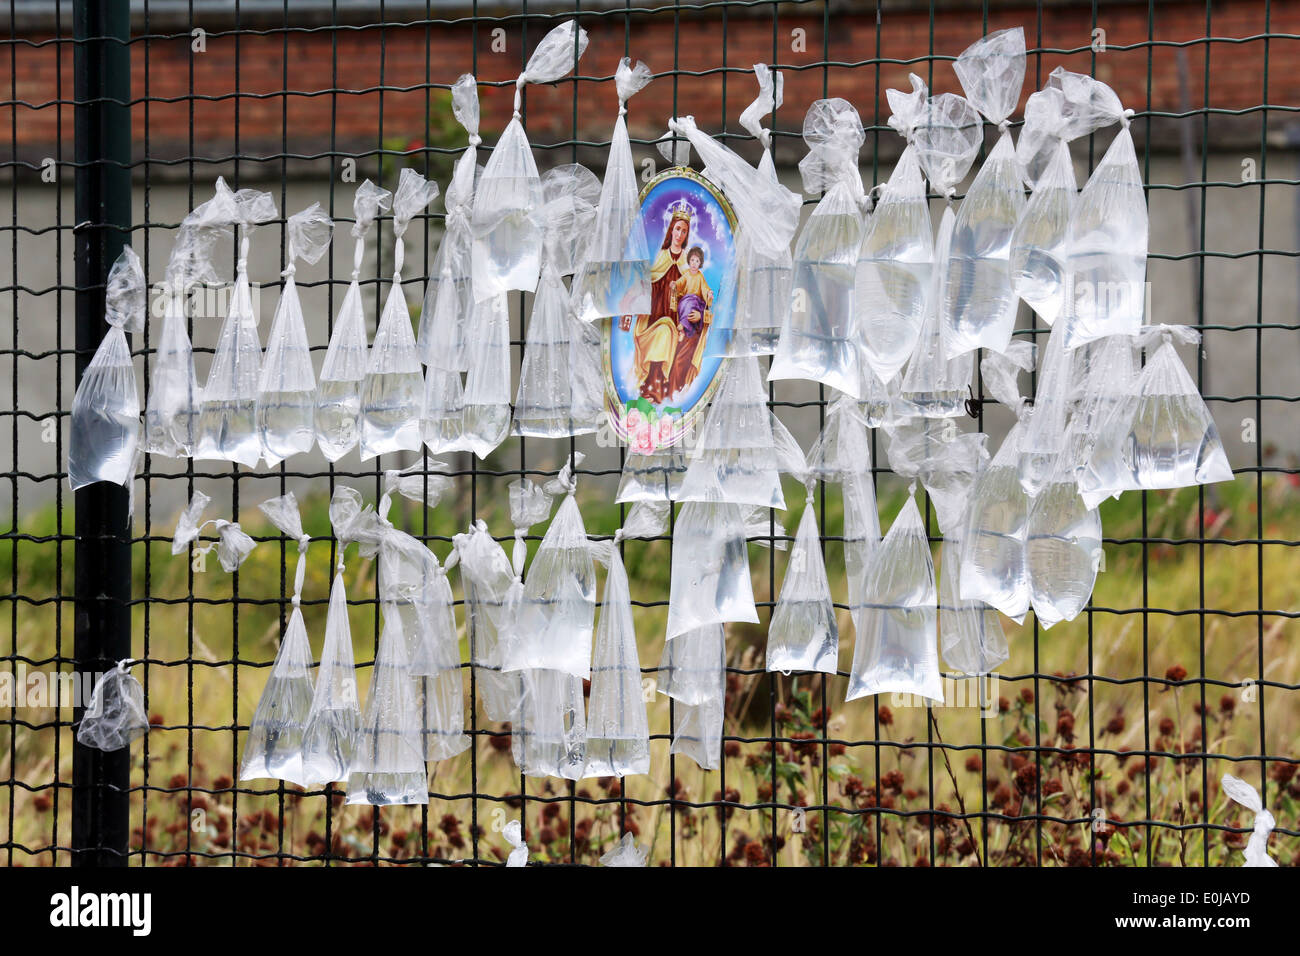 Tansparent plastic bags with water on a fence of the churchyard of nameless dead persons. Bogota, Colombia, South America - Stock Image